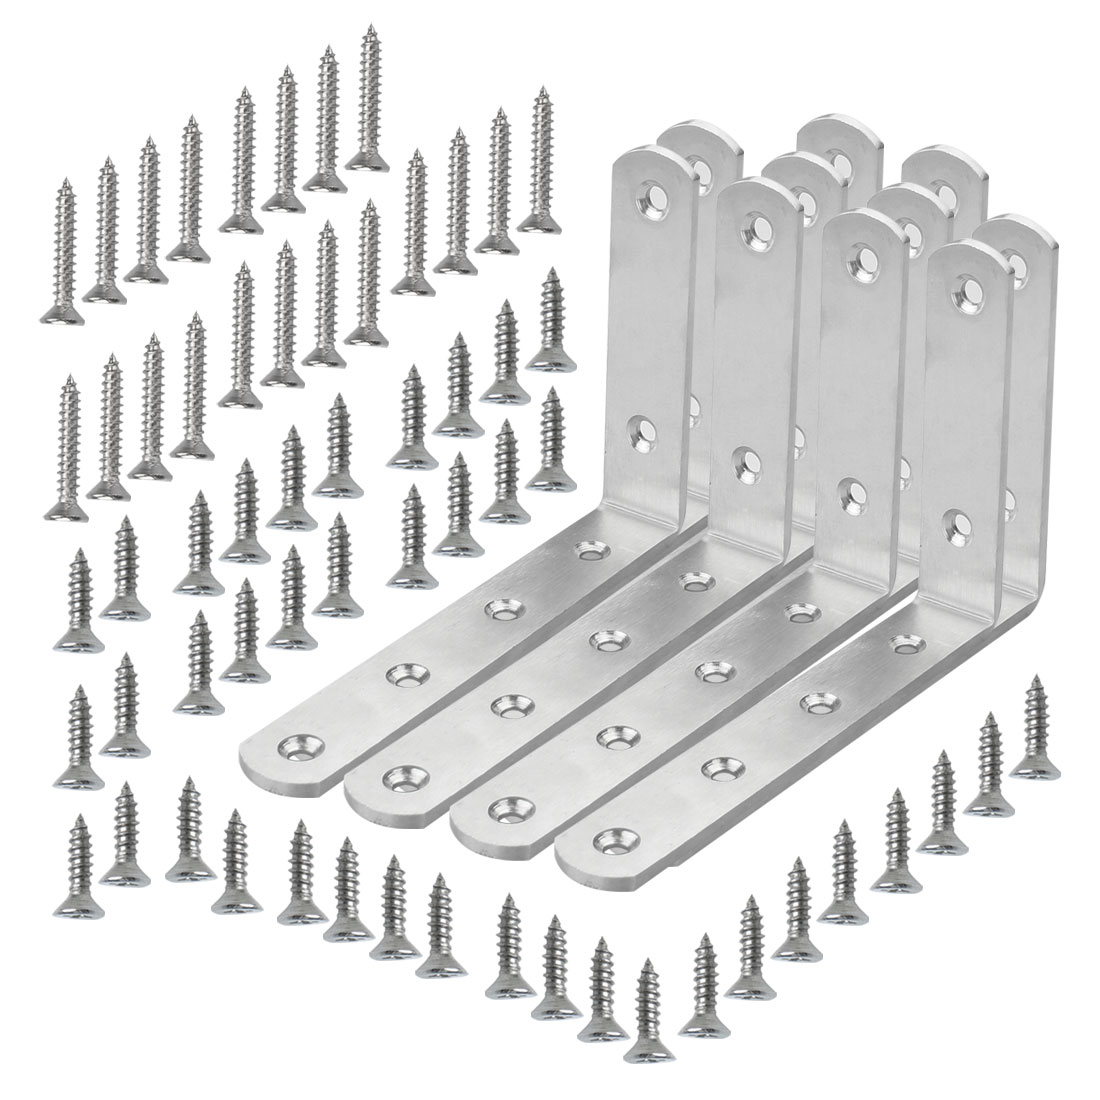 Angle Bracket Stainless Steel Brace Fastener Support w Screw 125 x 75mm, 10pcs